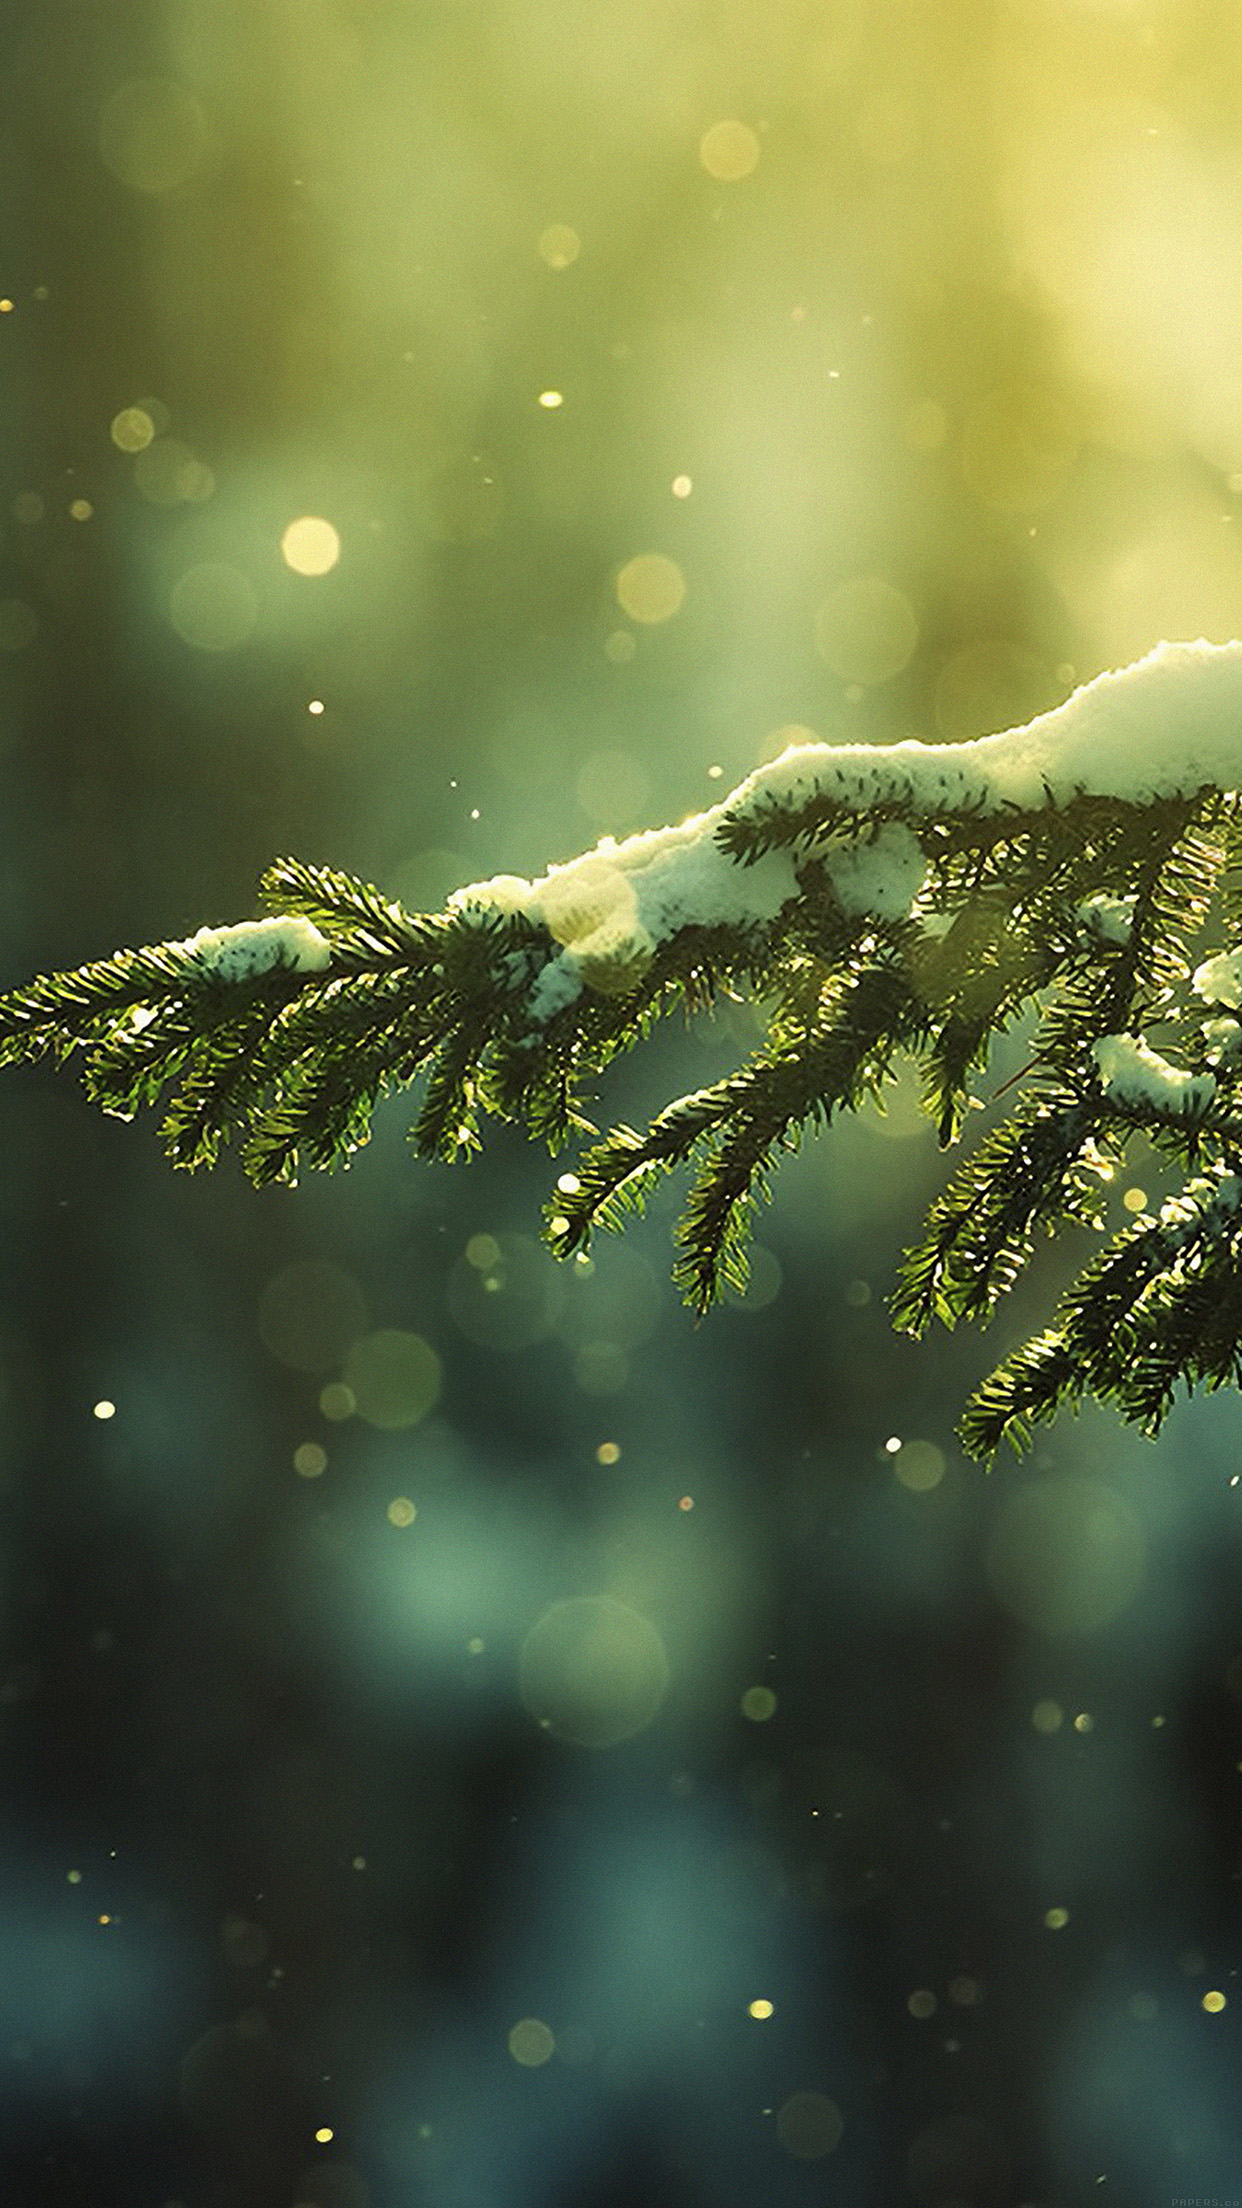 Snowing Tree Winter Nature Mountain Android wallpaper